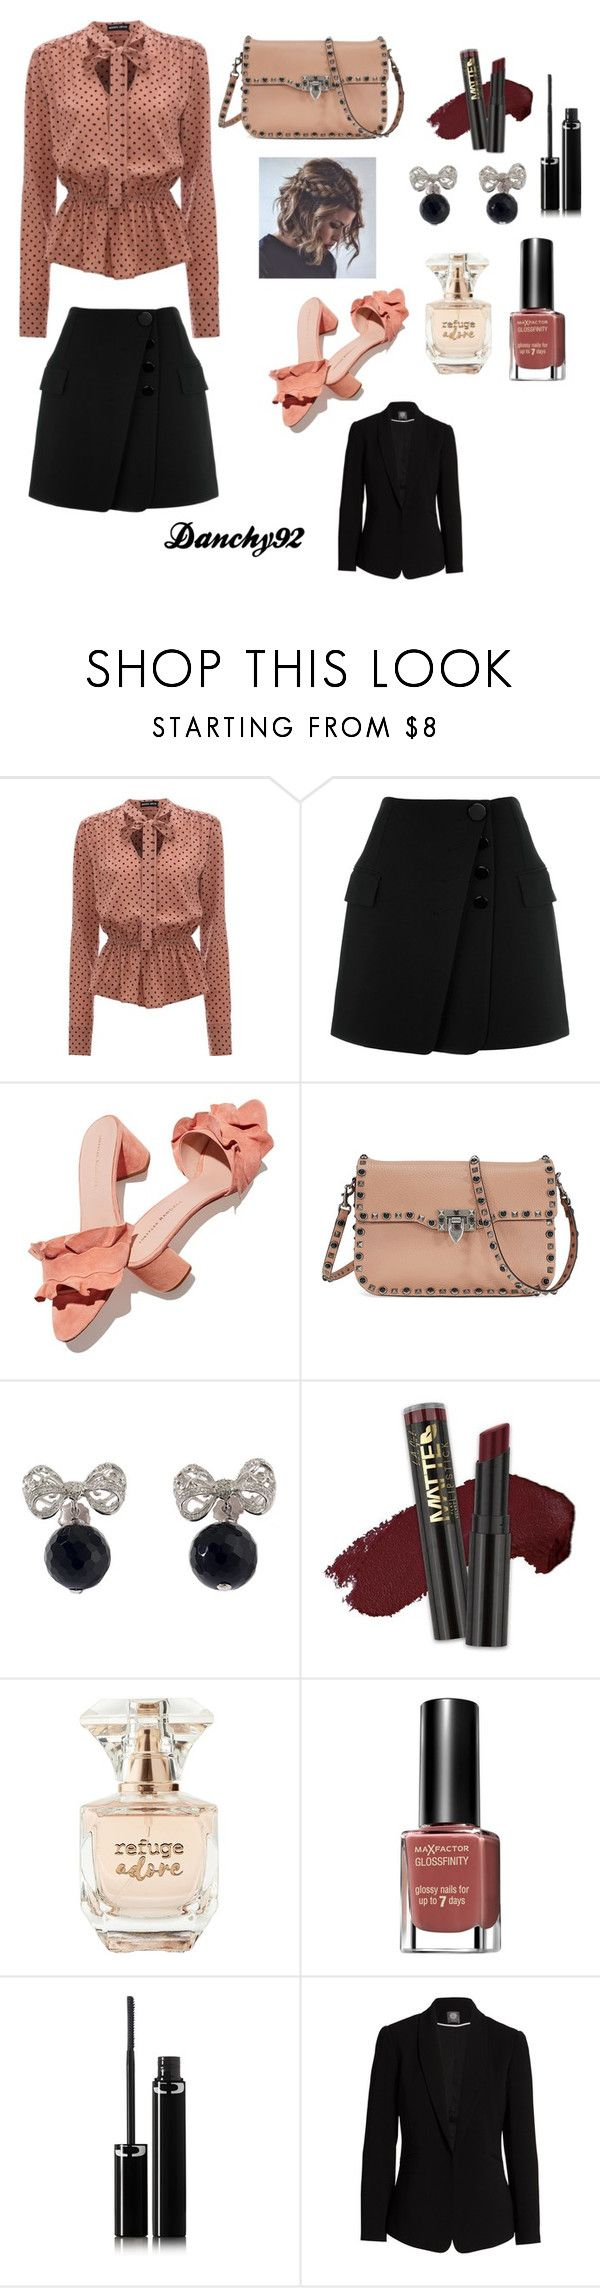 """Blush"" by dragica92 on Polyvore featuring Alexander Wang, Loeffler Randall, Valentino, Misis, L.A. Girl, Refuge, Max Factor, Sisley and Vince Camuto"